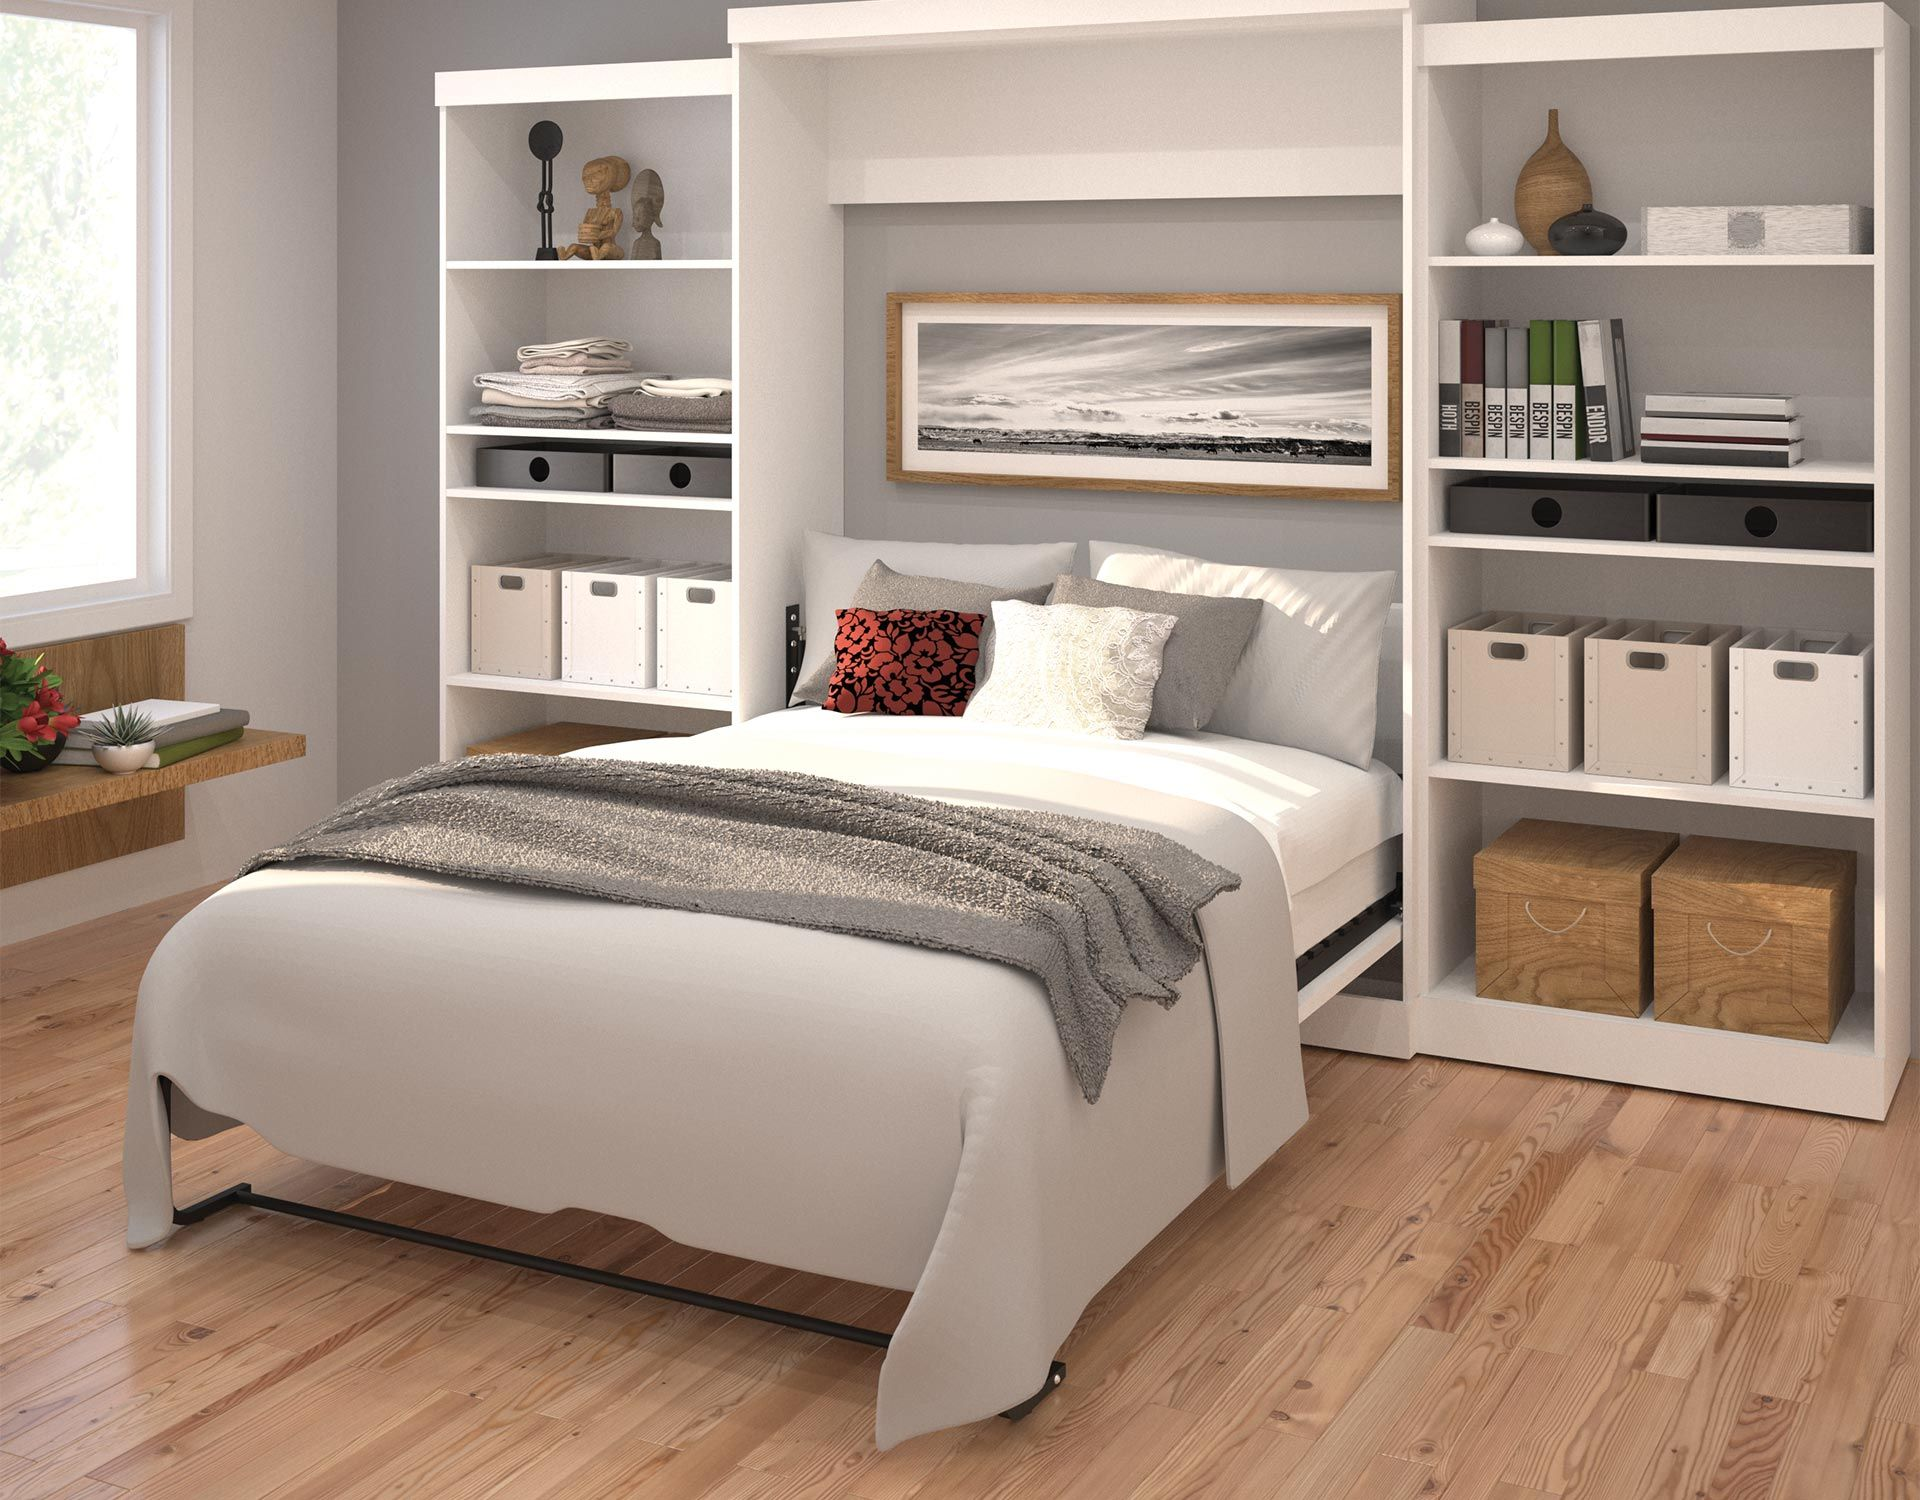 Stunning Design Of Costco Wall Beds For Chic Bedroom Decoration